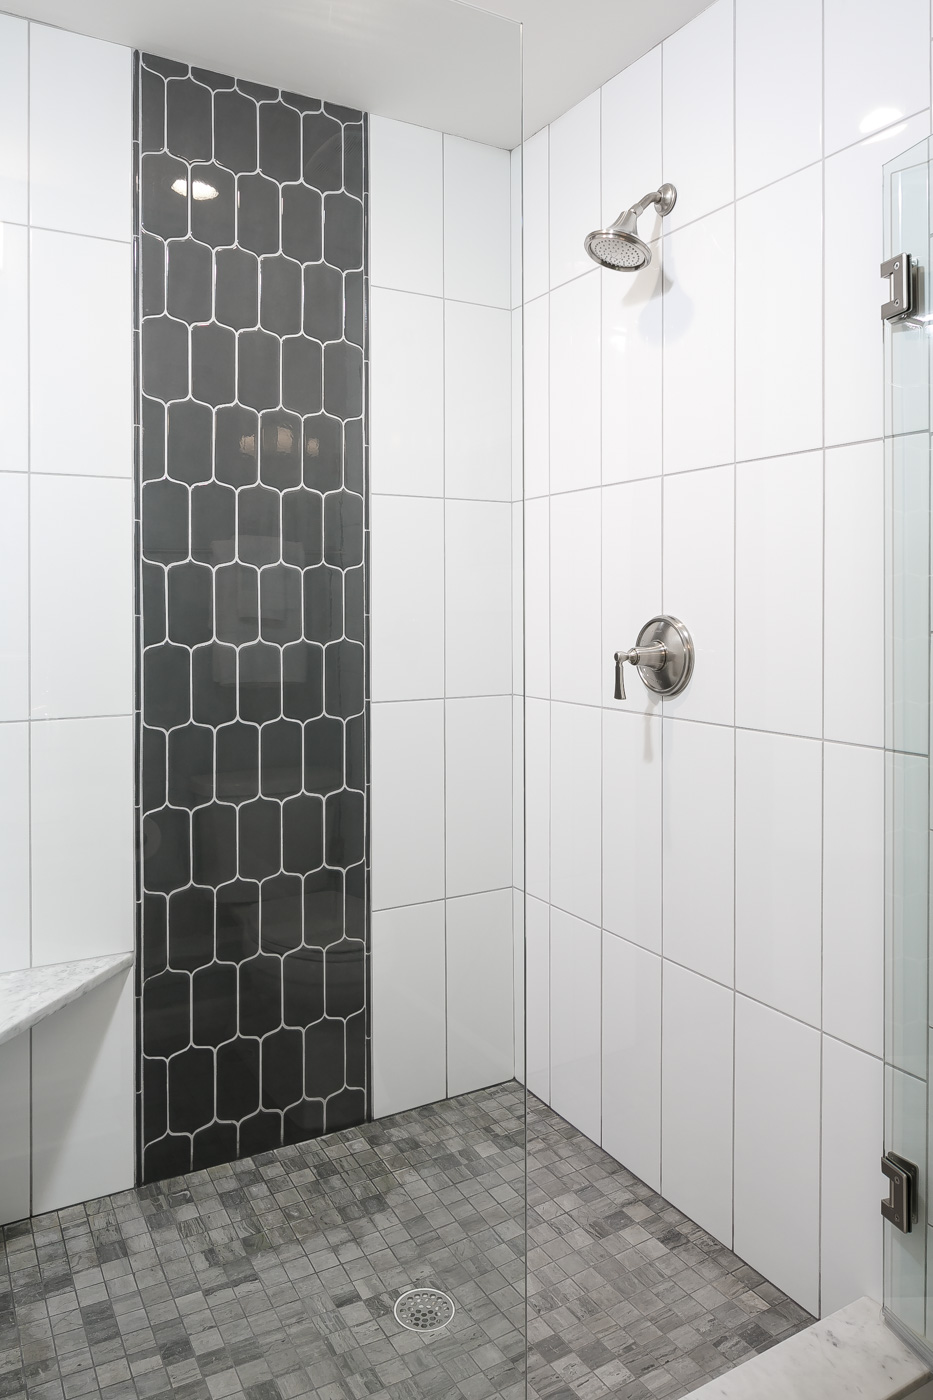 Upstairs ensuite bathroom: spacious shower